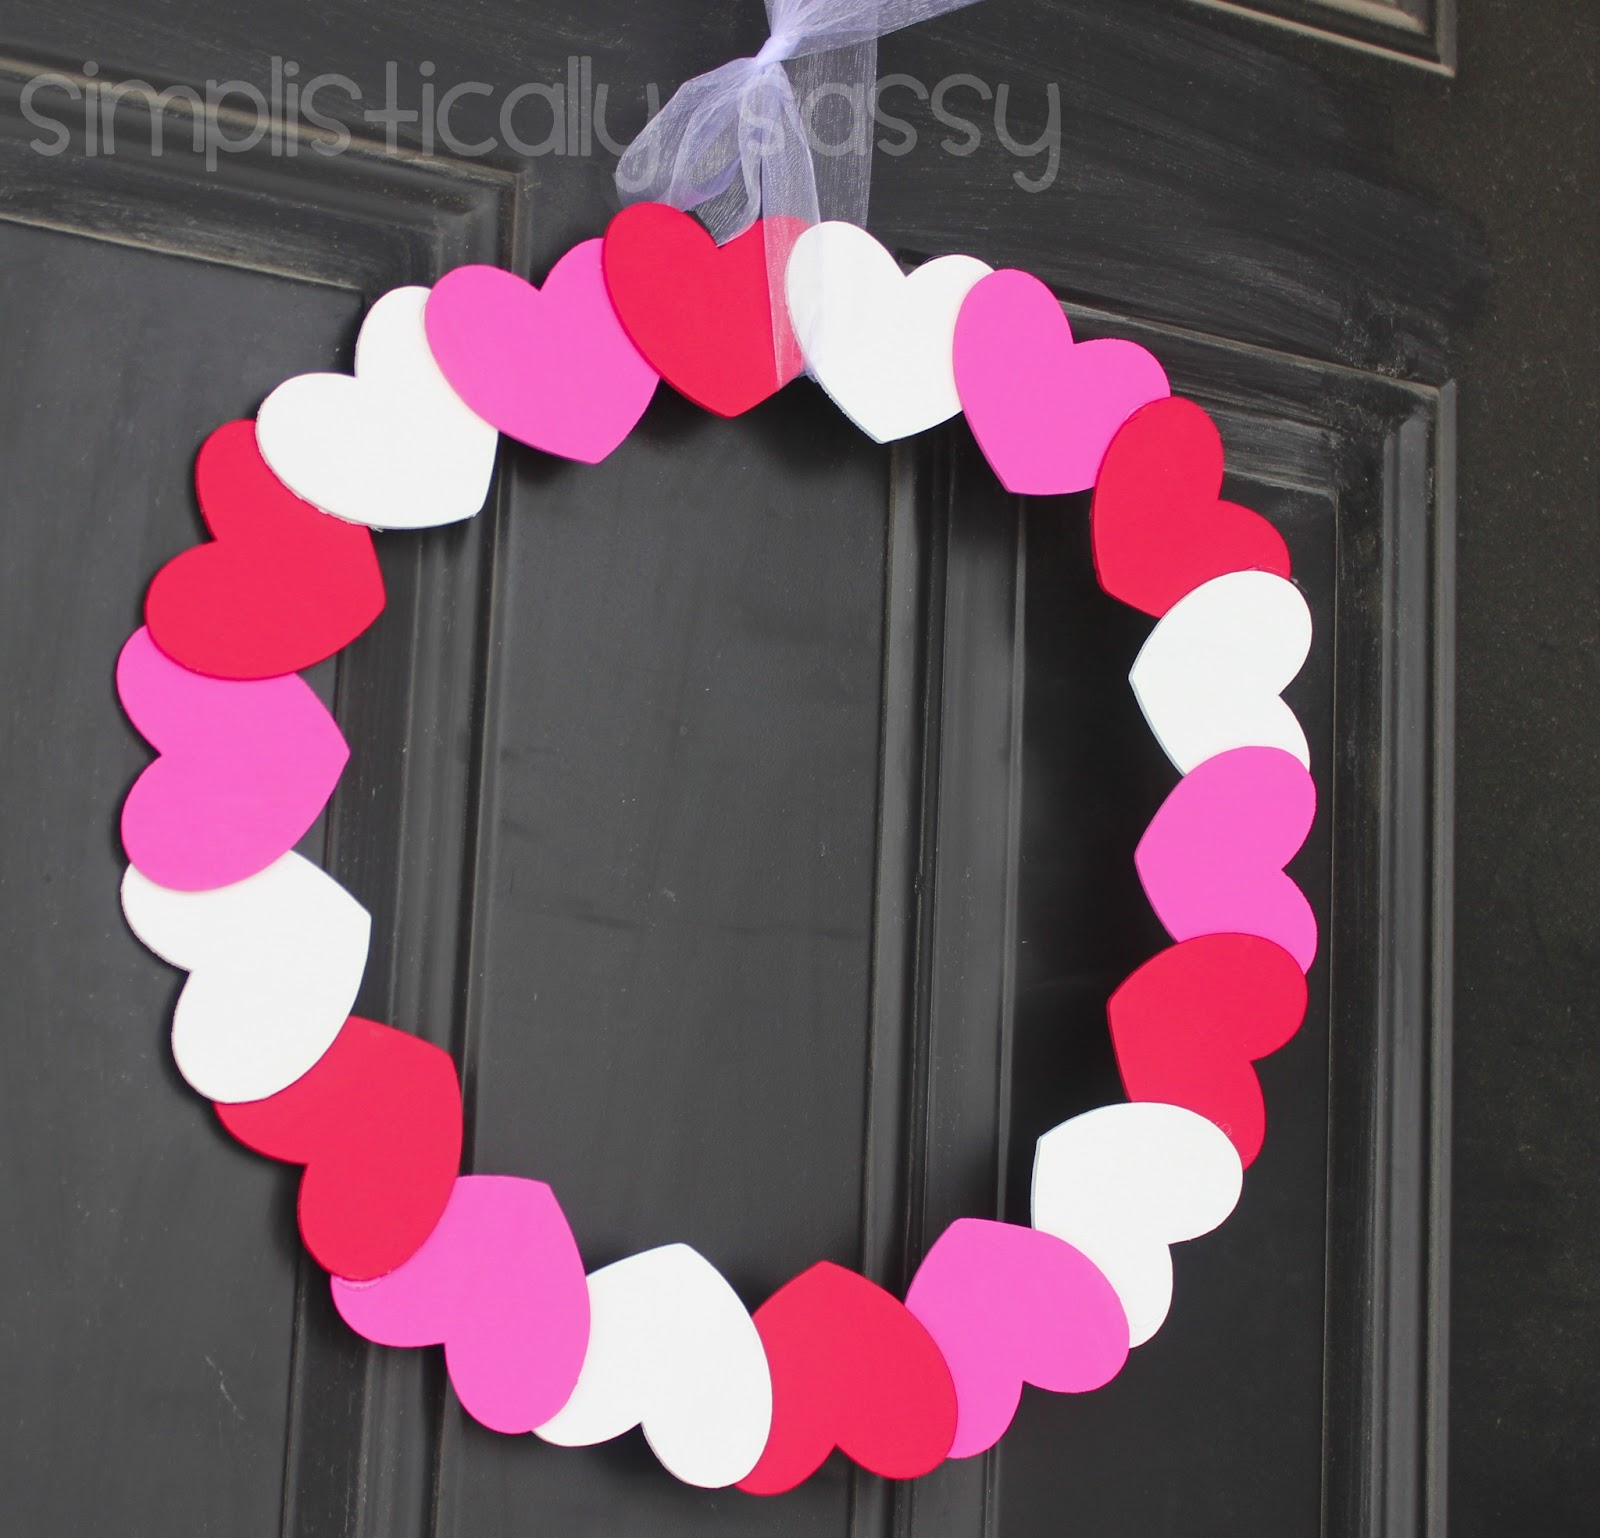 Valentine 39 s day diy decorations events to celebrate for Valentine decorations to make at home